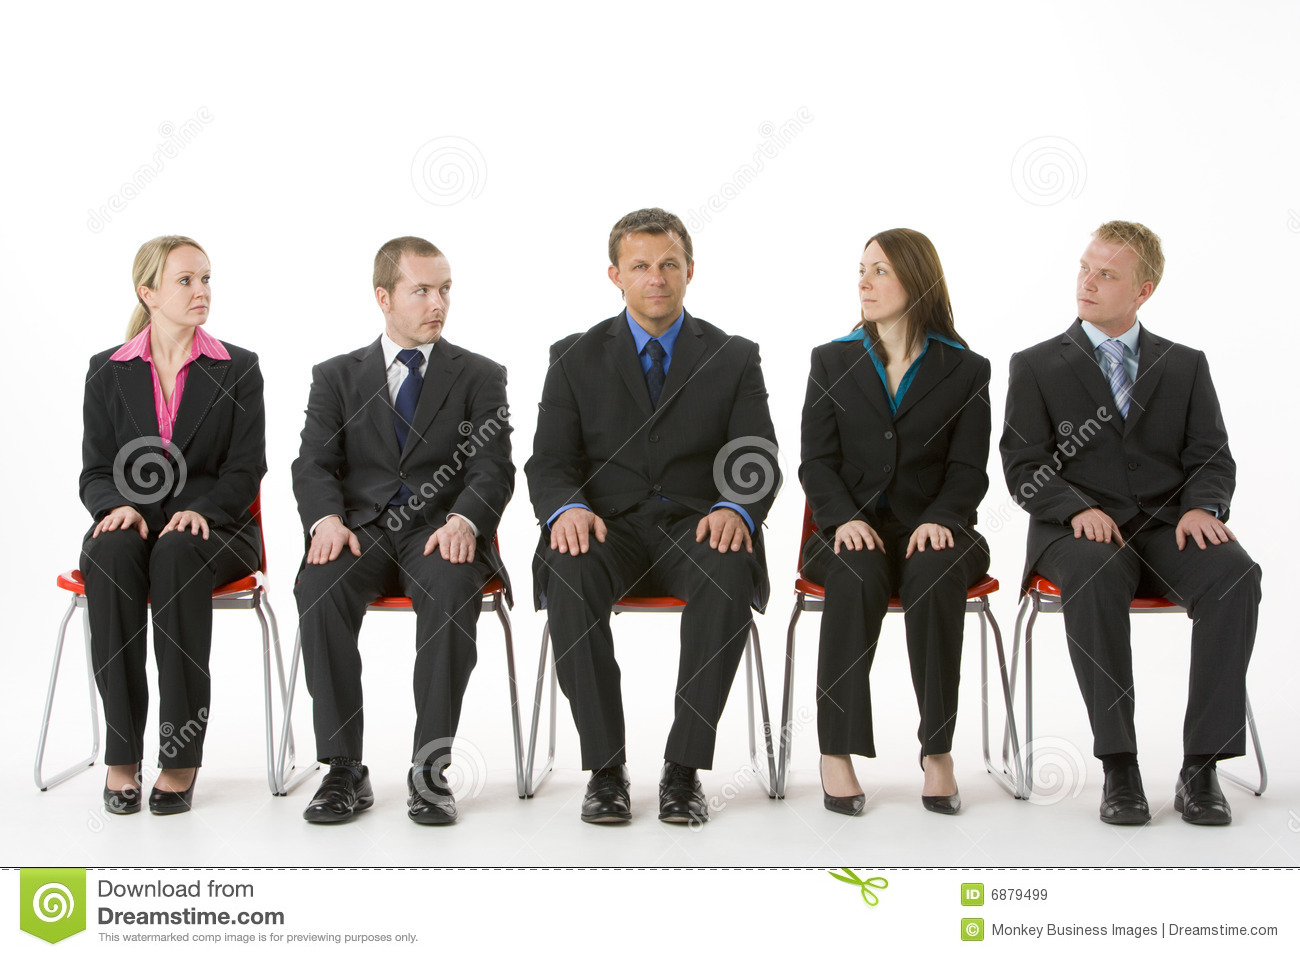 Group Of Business People Sitting In A Line Royalty Free Stock Images. People Waiting Job Interview Stock Photos  Images    Pictures